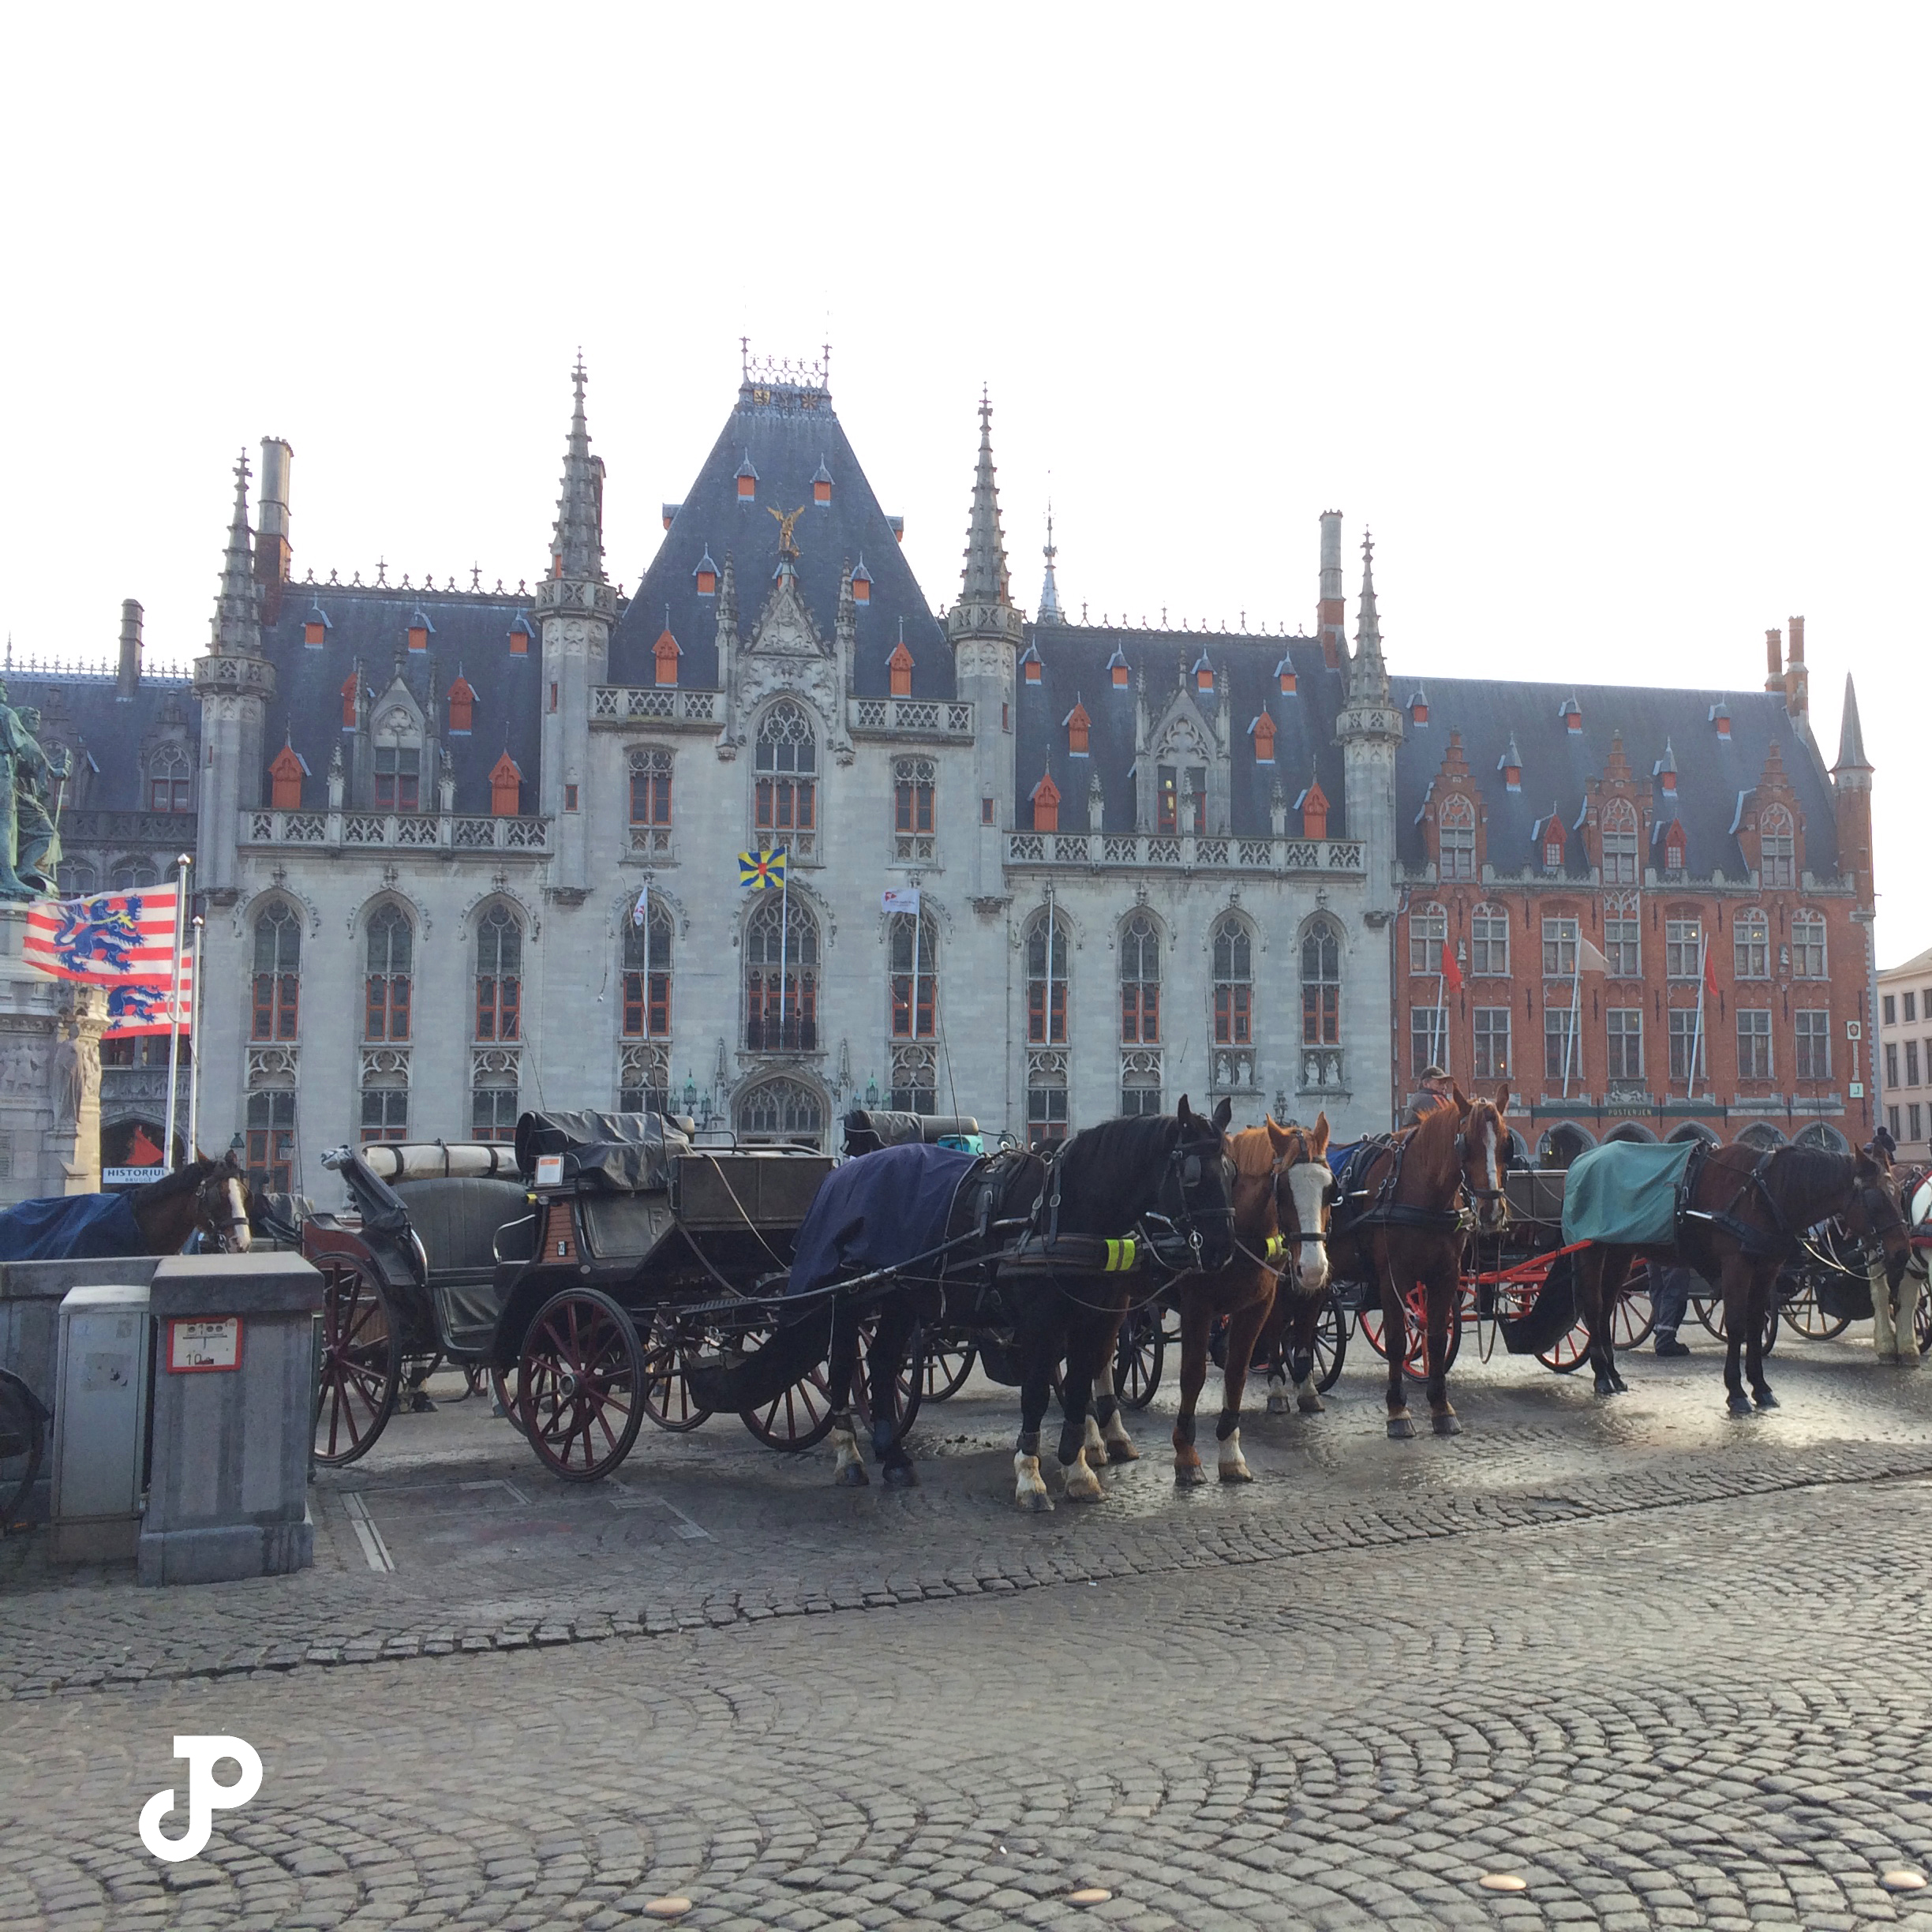 horses and carriages lined up in Burg Square, with the Bruges City Hall in the background